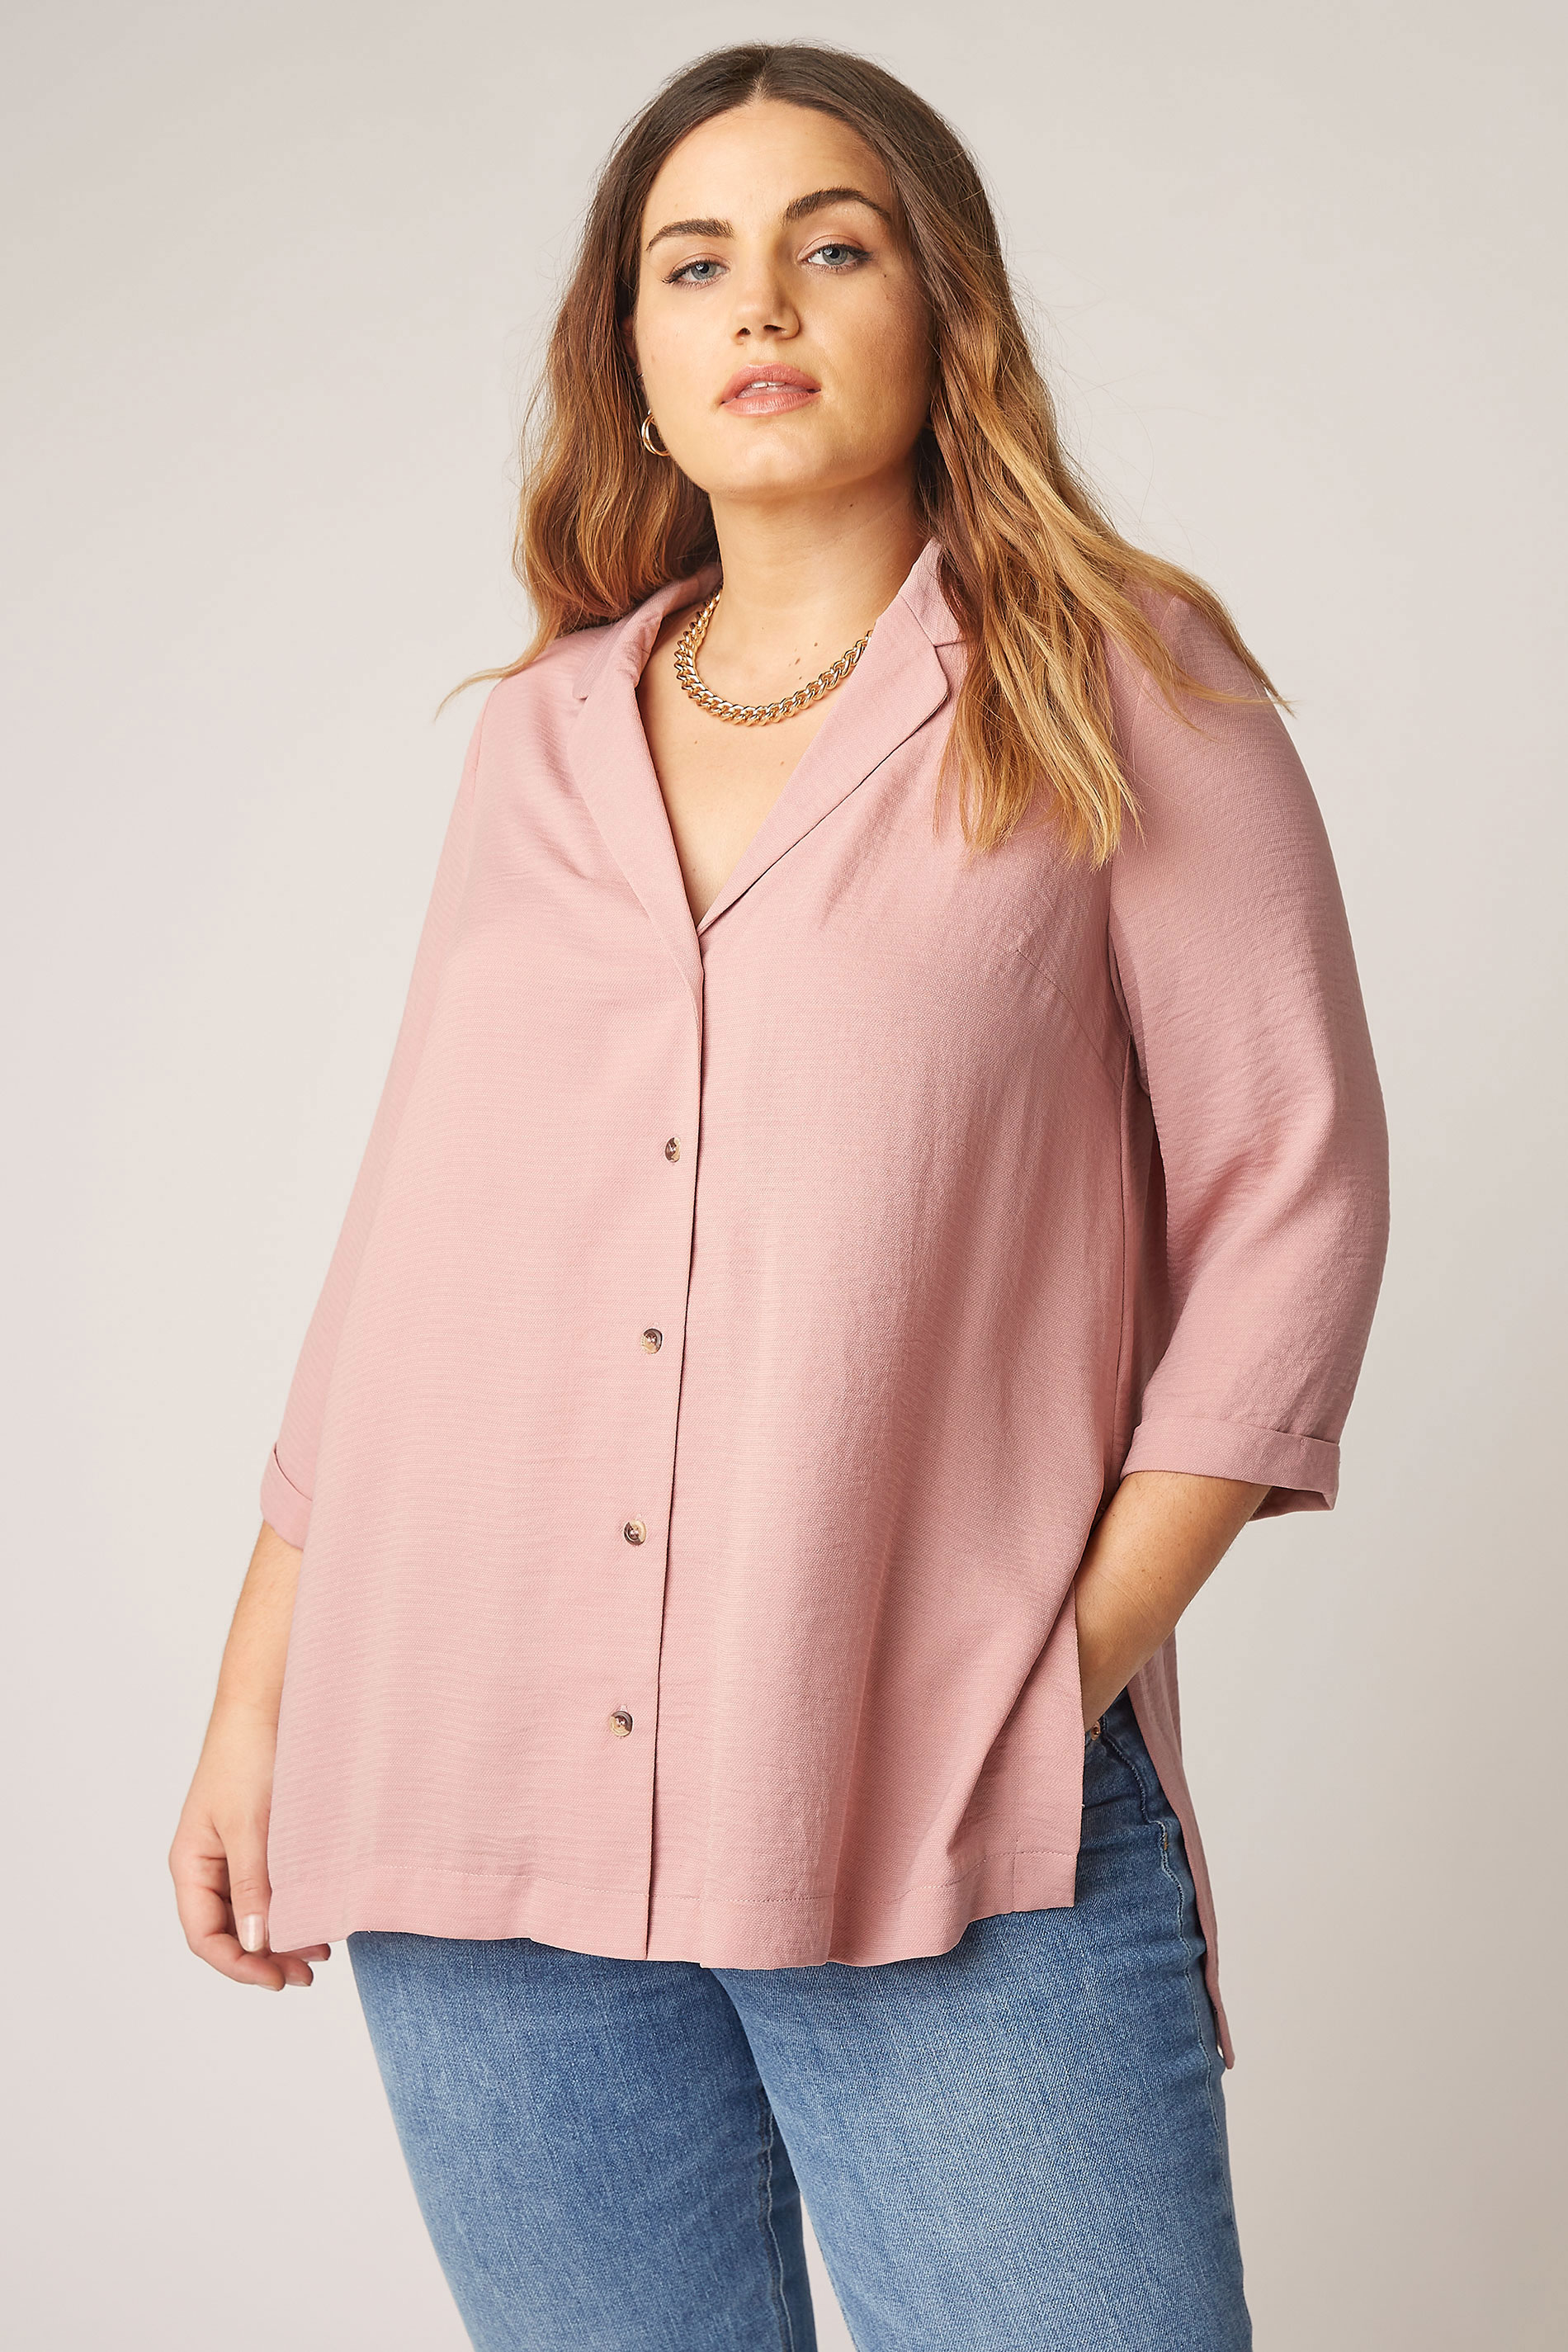 THE LIMITED EDIT Pink Open Collar Blouse_A.jpg